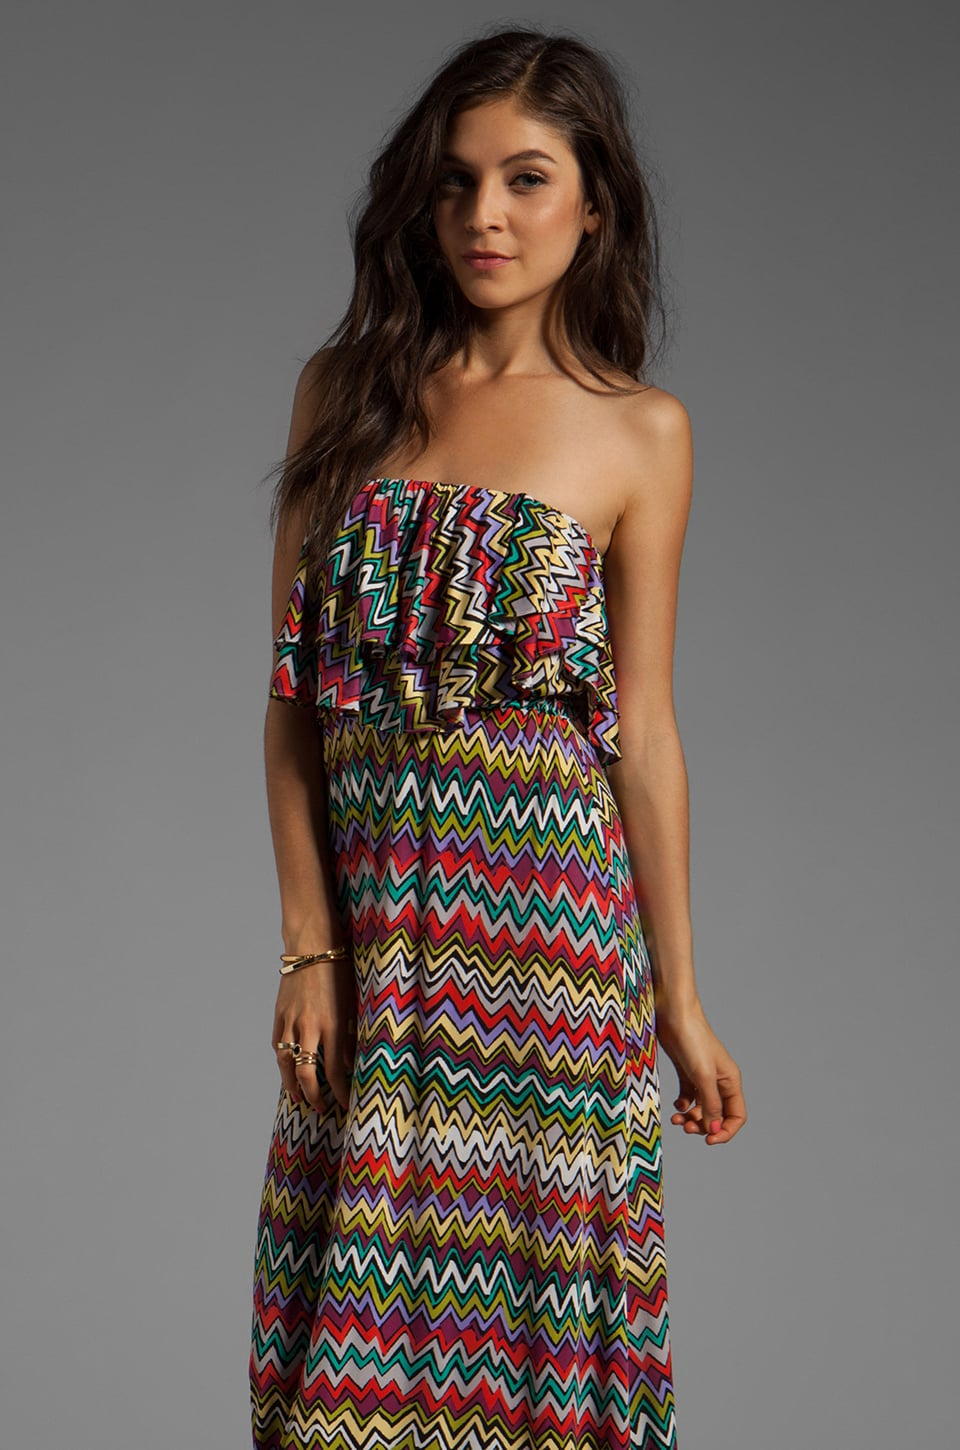 T-Bags LosAngeles Strapless Maxi in Zig Zag